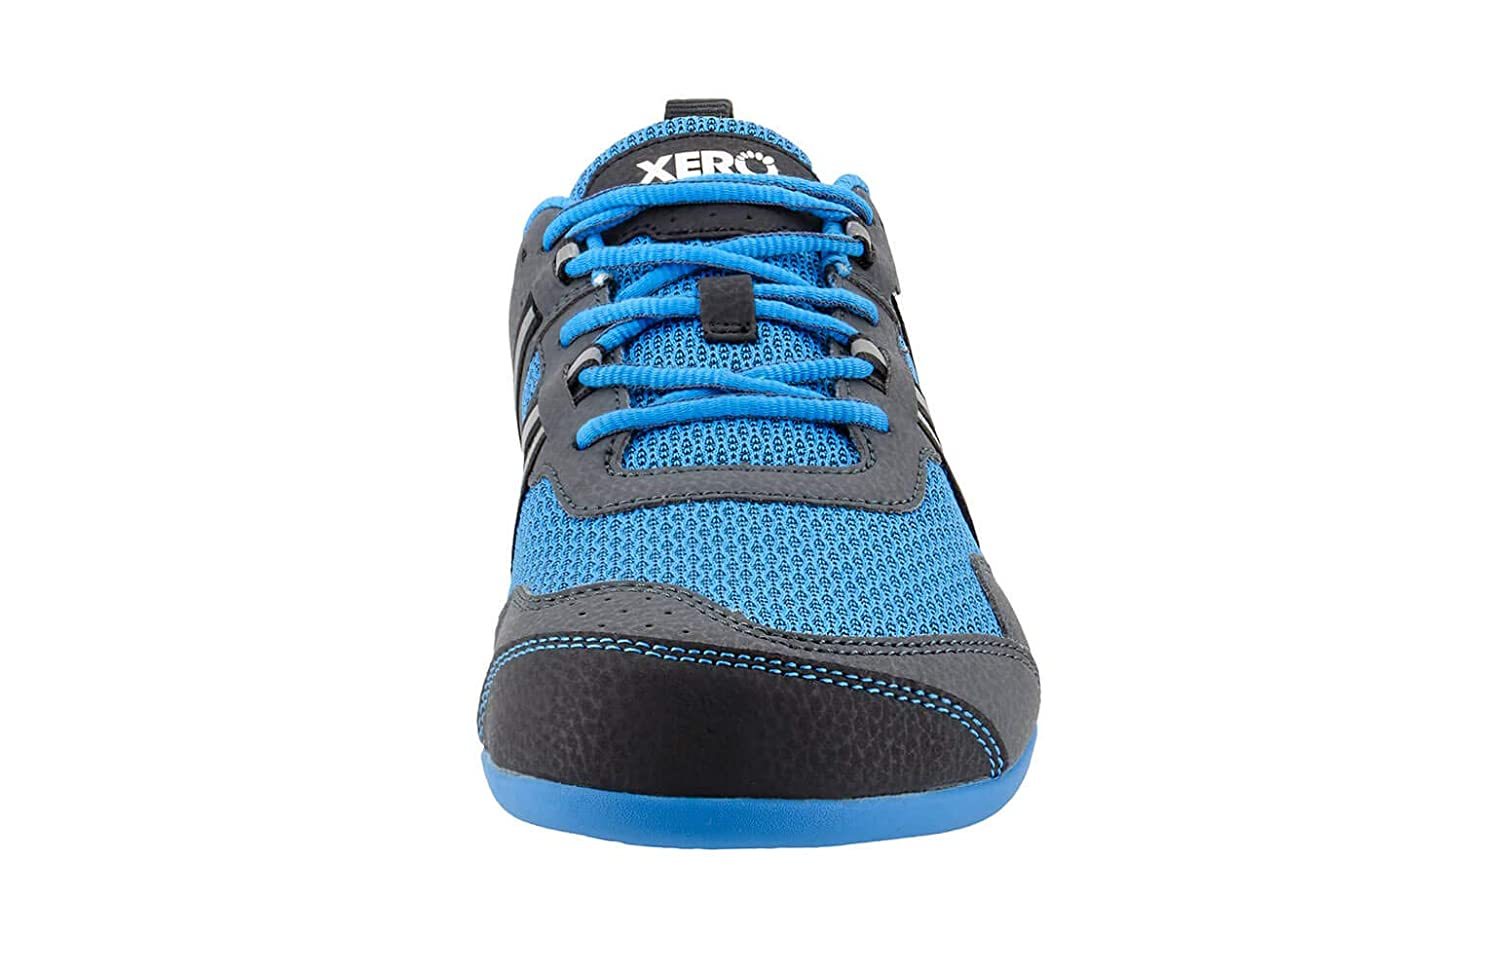 Xero Shoes Prio Fitness Mens Minimalist Barefoot Trail and Road Running Shoe Athletic Zero Drop Sneaker